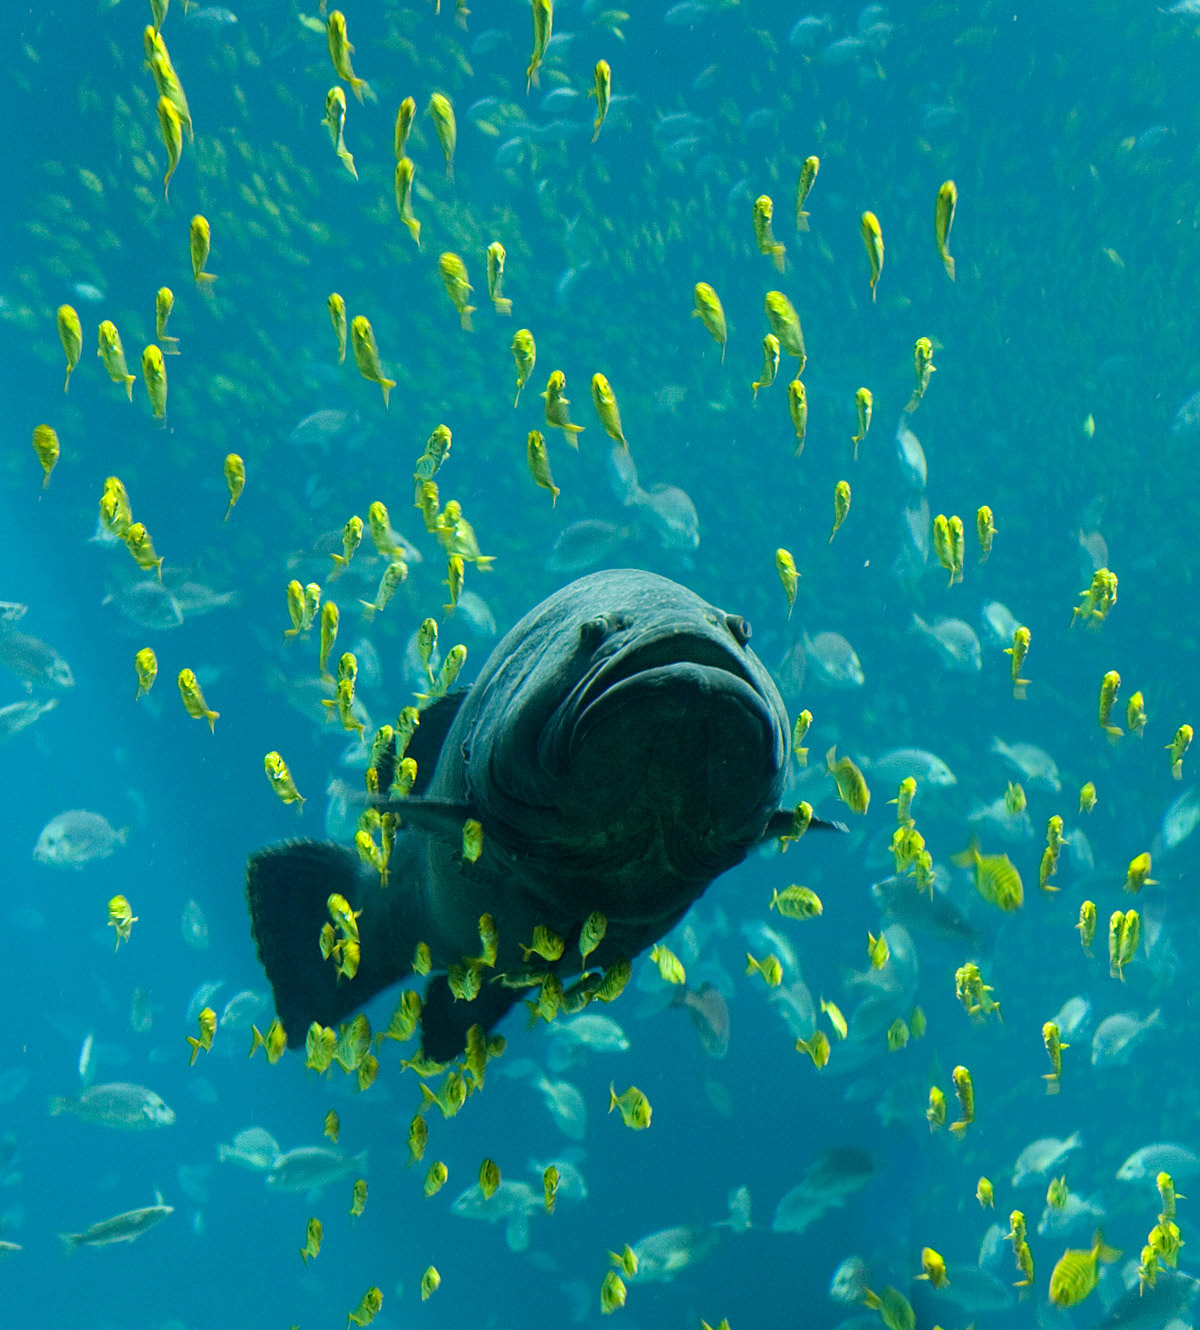 A giant grouper at the Georgia Aquarium, seen swimming among schools of other fish